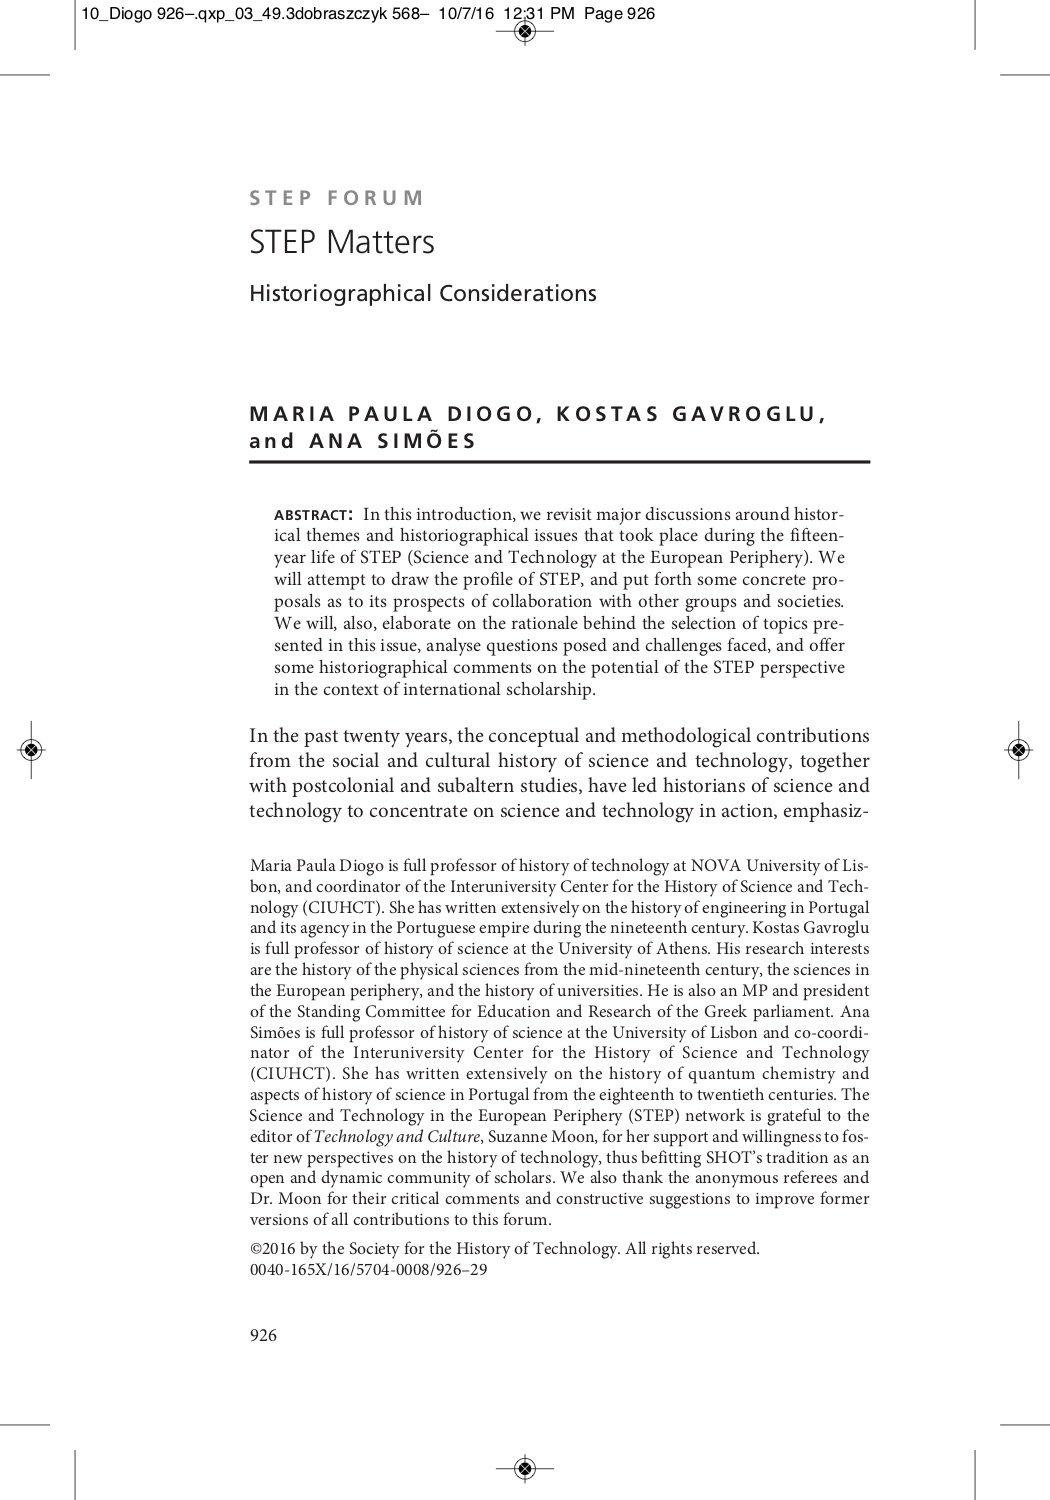 STEP Matters. Historiographical Considerations, Capa